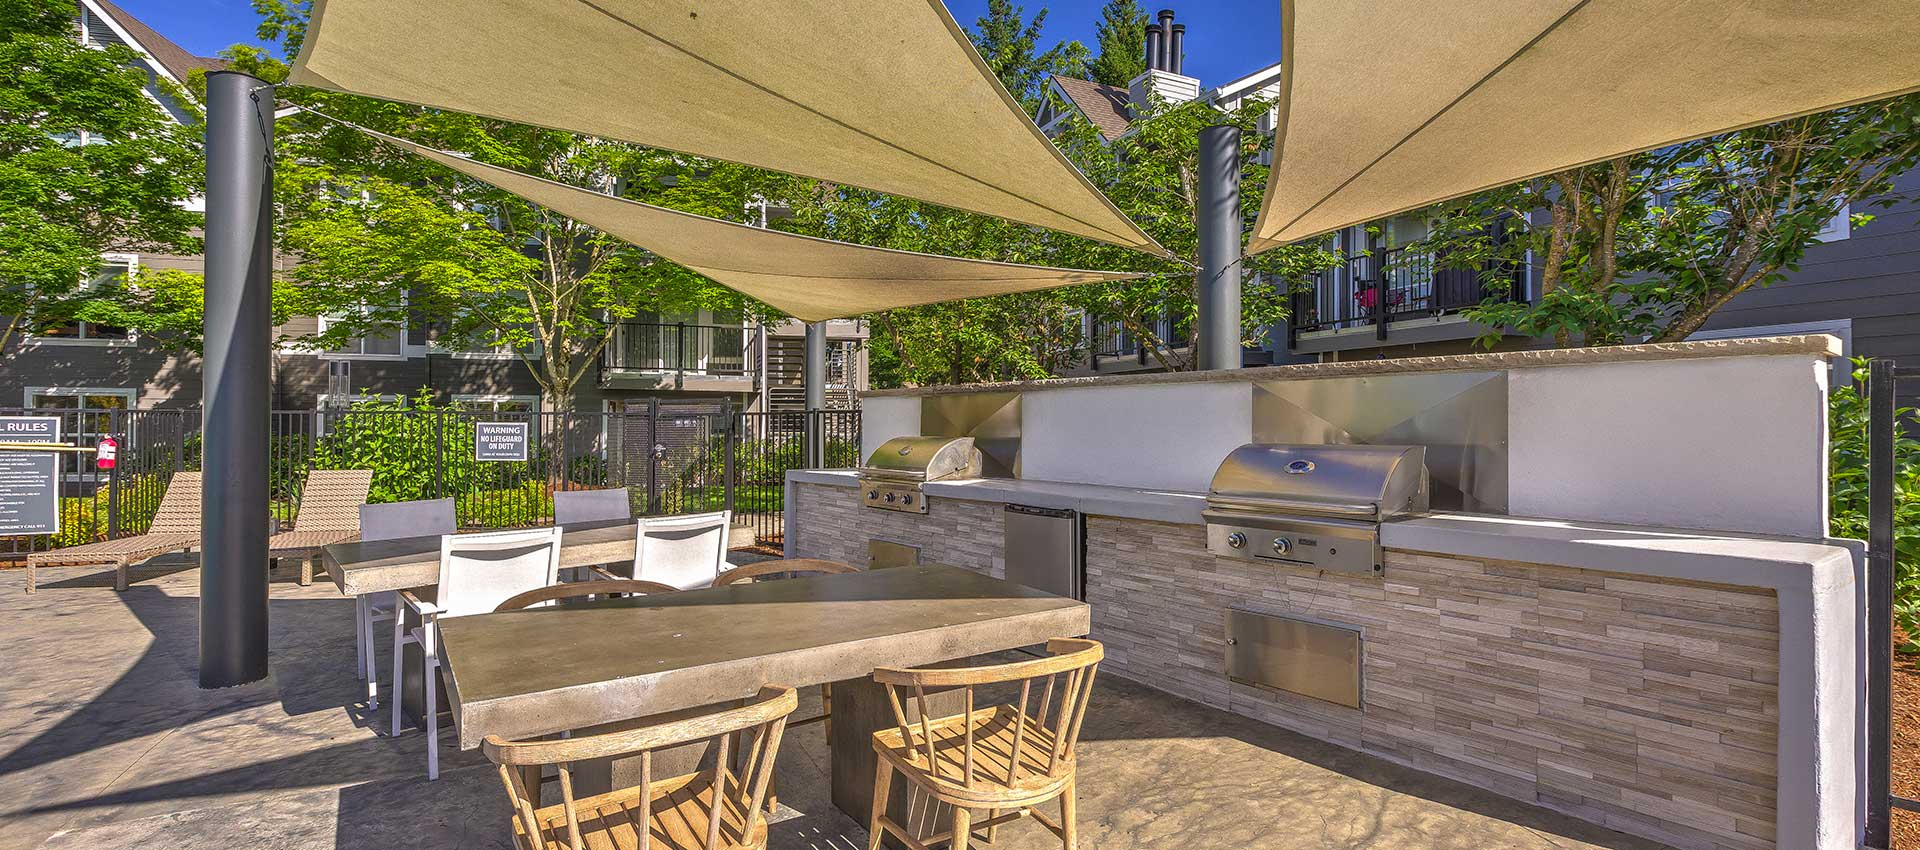 Outdoor kitchen at Centro Apartment Homes